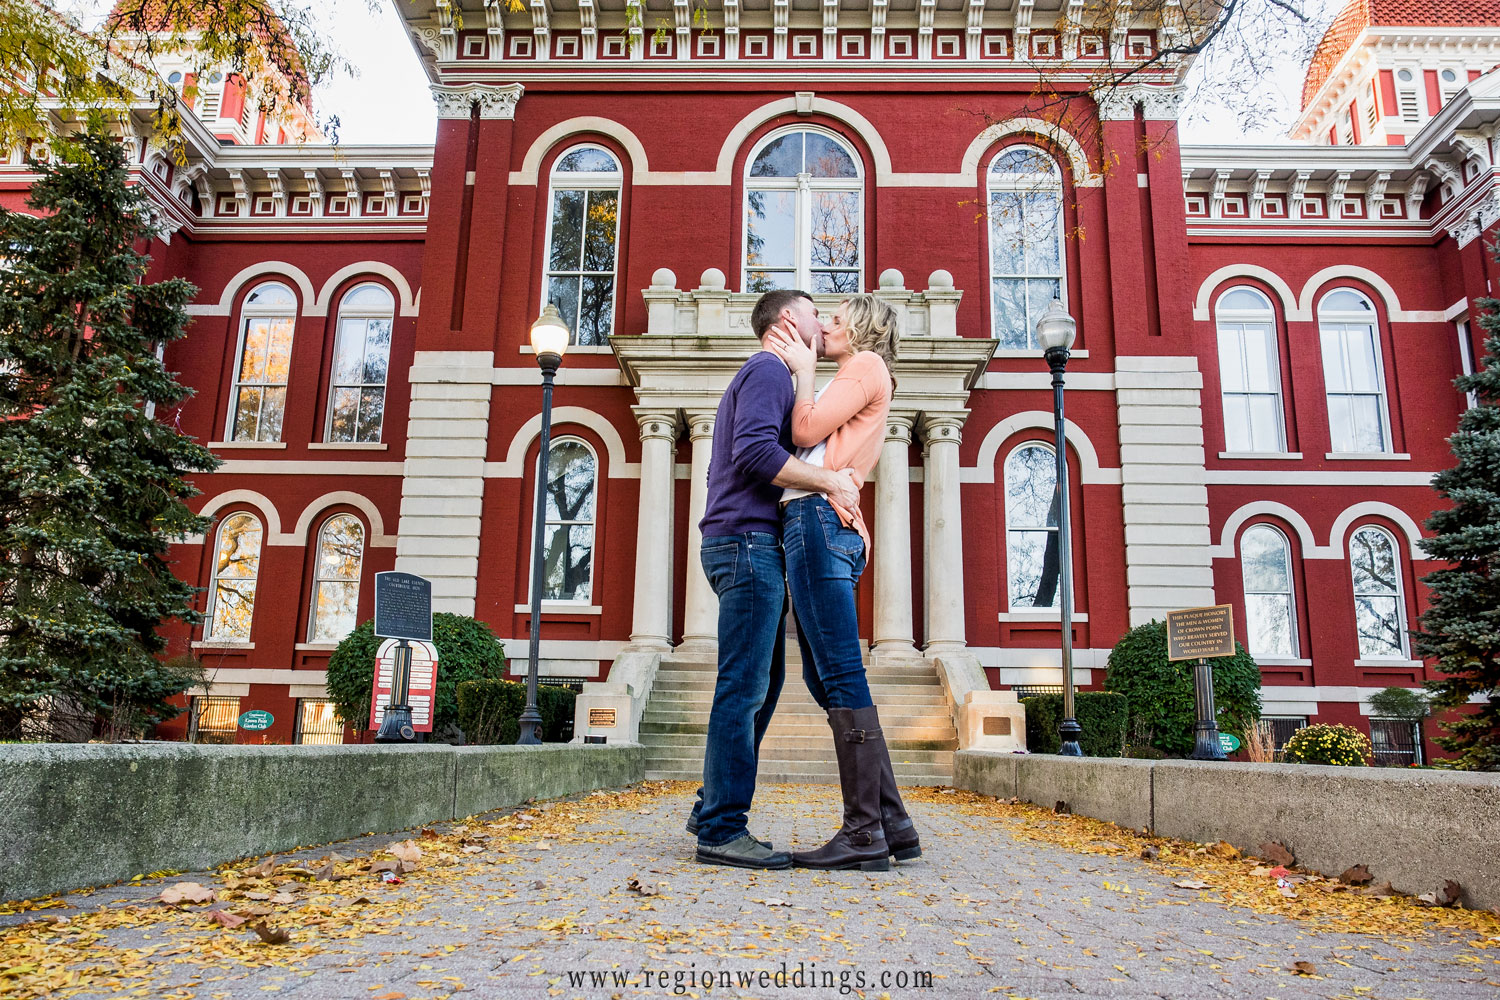 A couple in love kiss romantically at the steps of the Old Crown Point Courthouse.